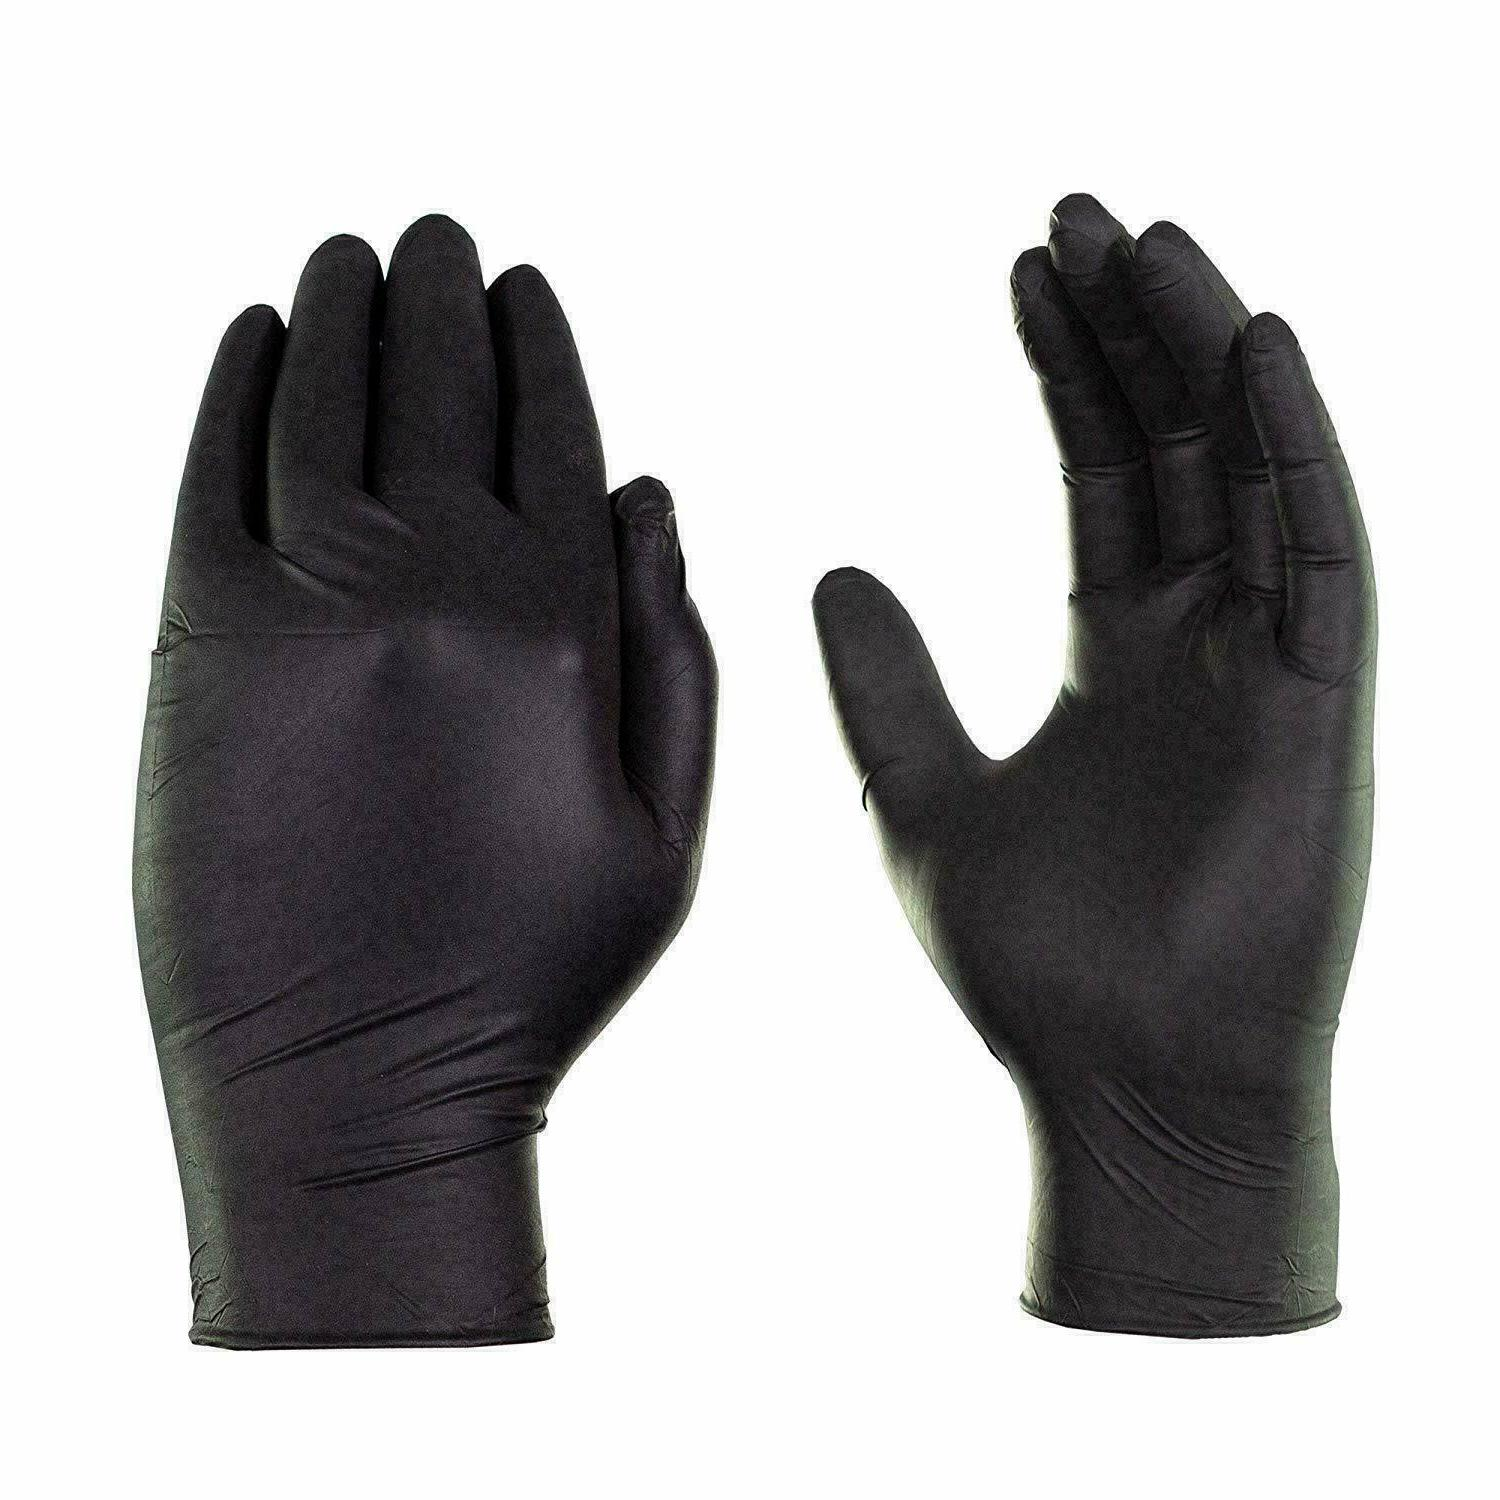 100 Pack Black Gloves Nitrile Powder Free Latex Rubber Heavy